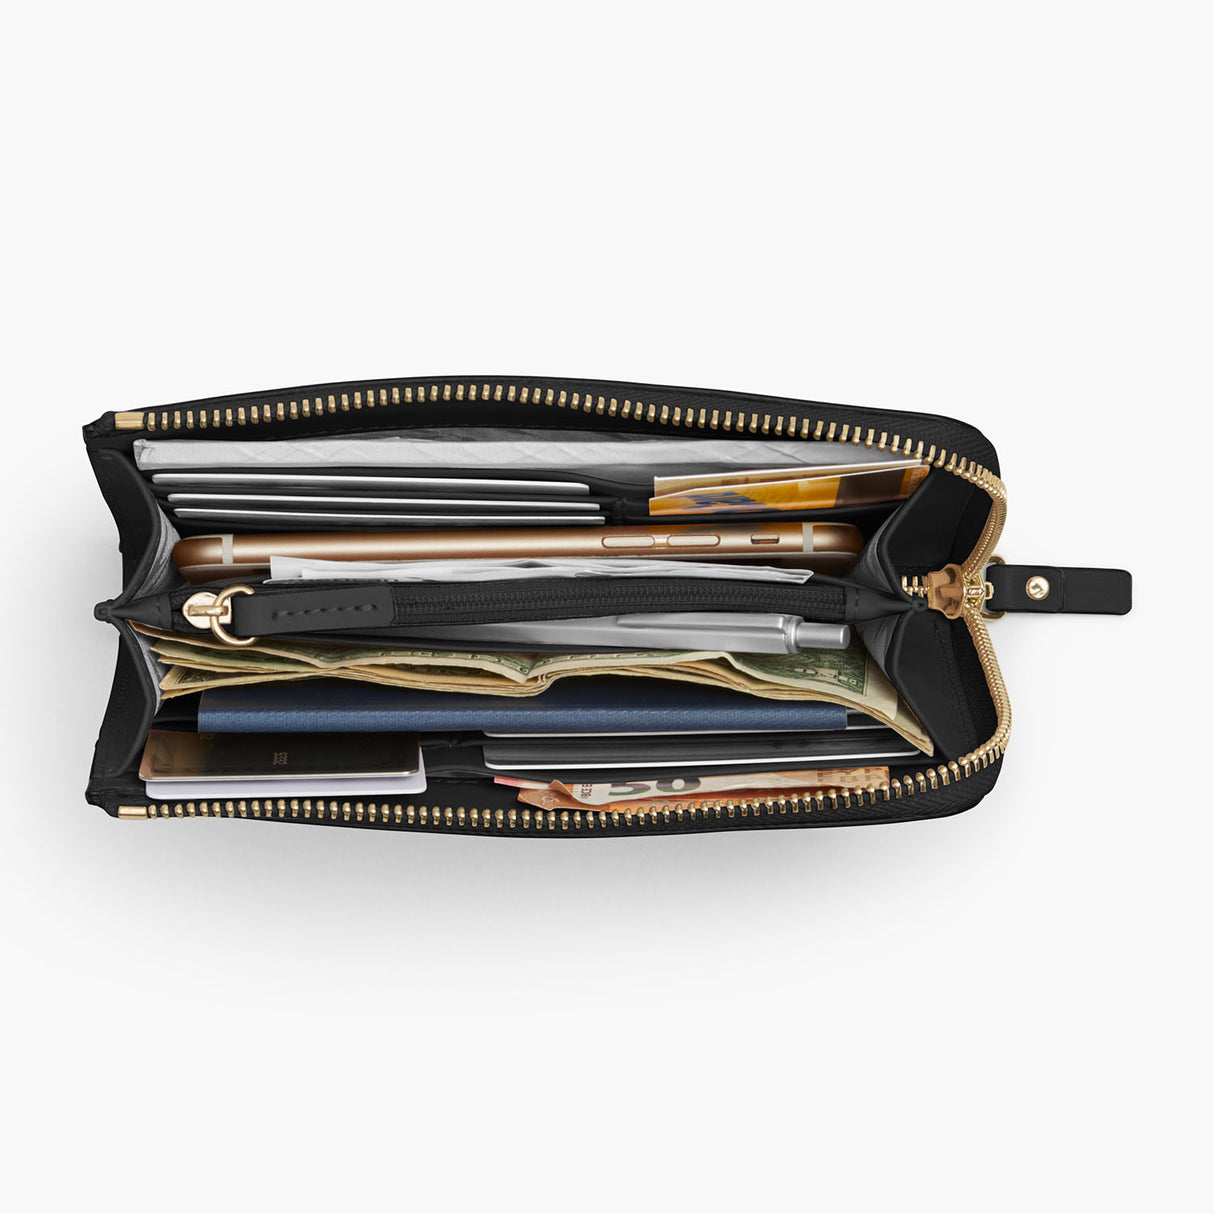 Overhead Interior Propped - The Leather Wallet - Saffiano Leather - Black / Gold / Grey - Small Accessory - Lo & Sons